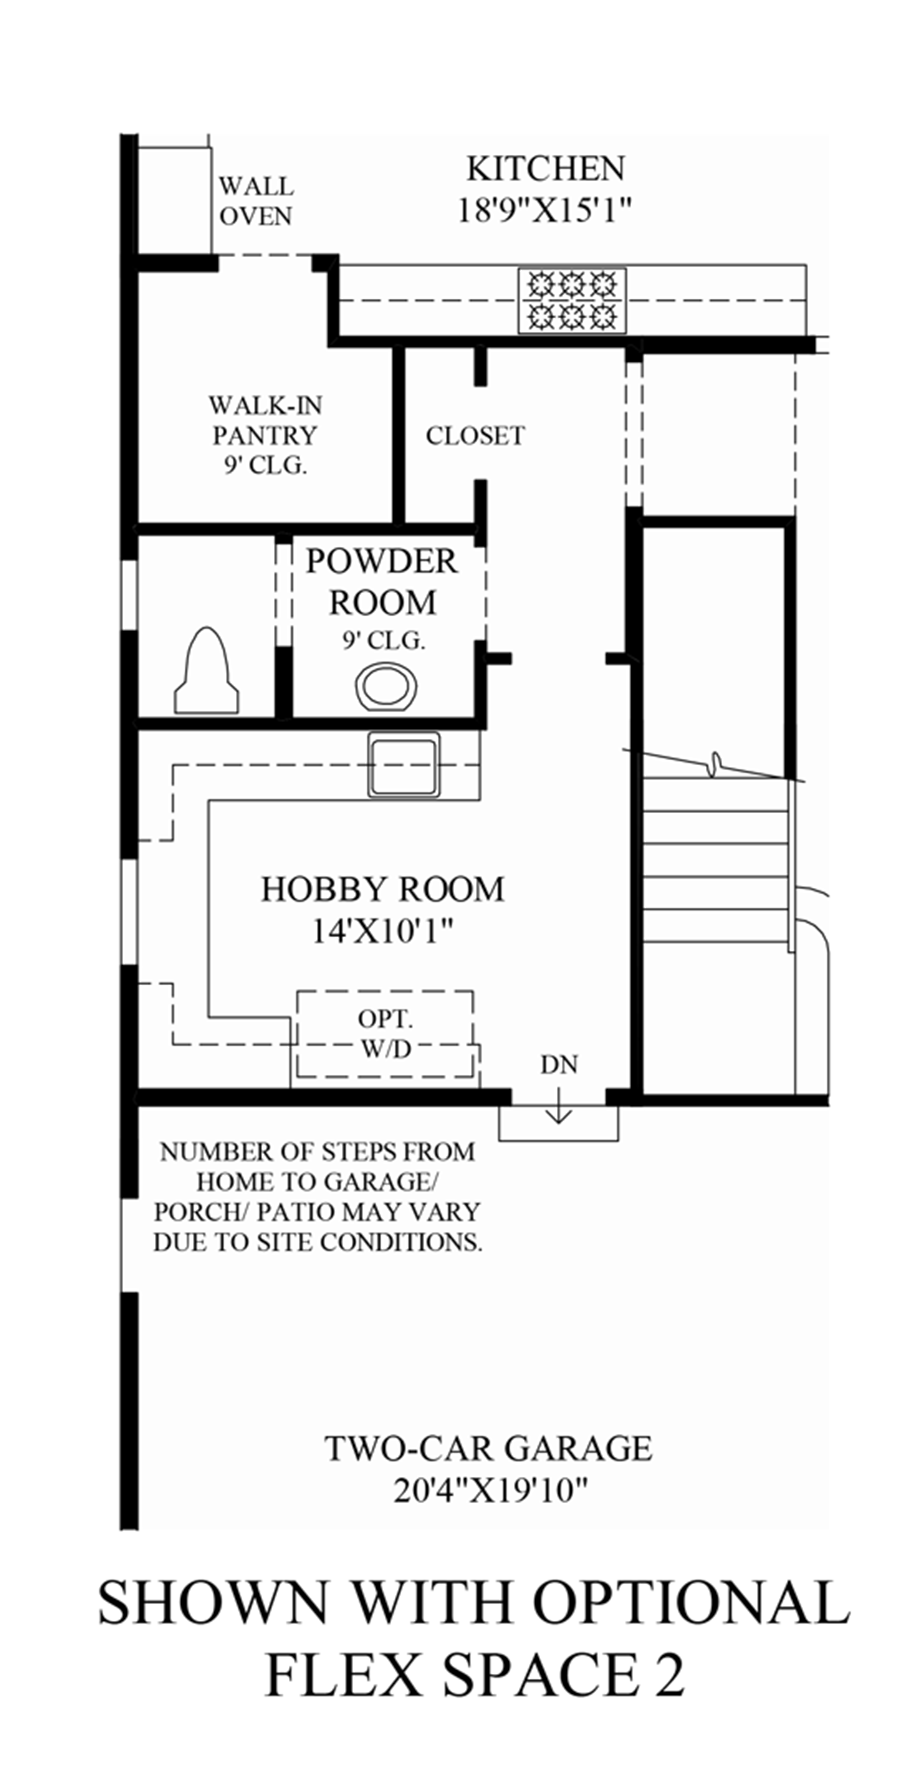 Optional Flex Space 2 Floor Plan